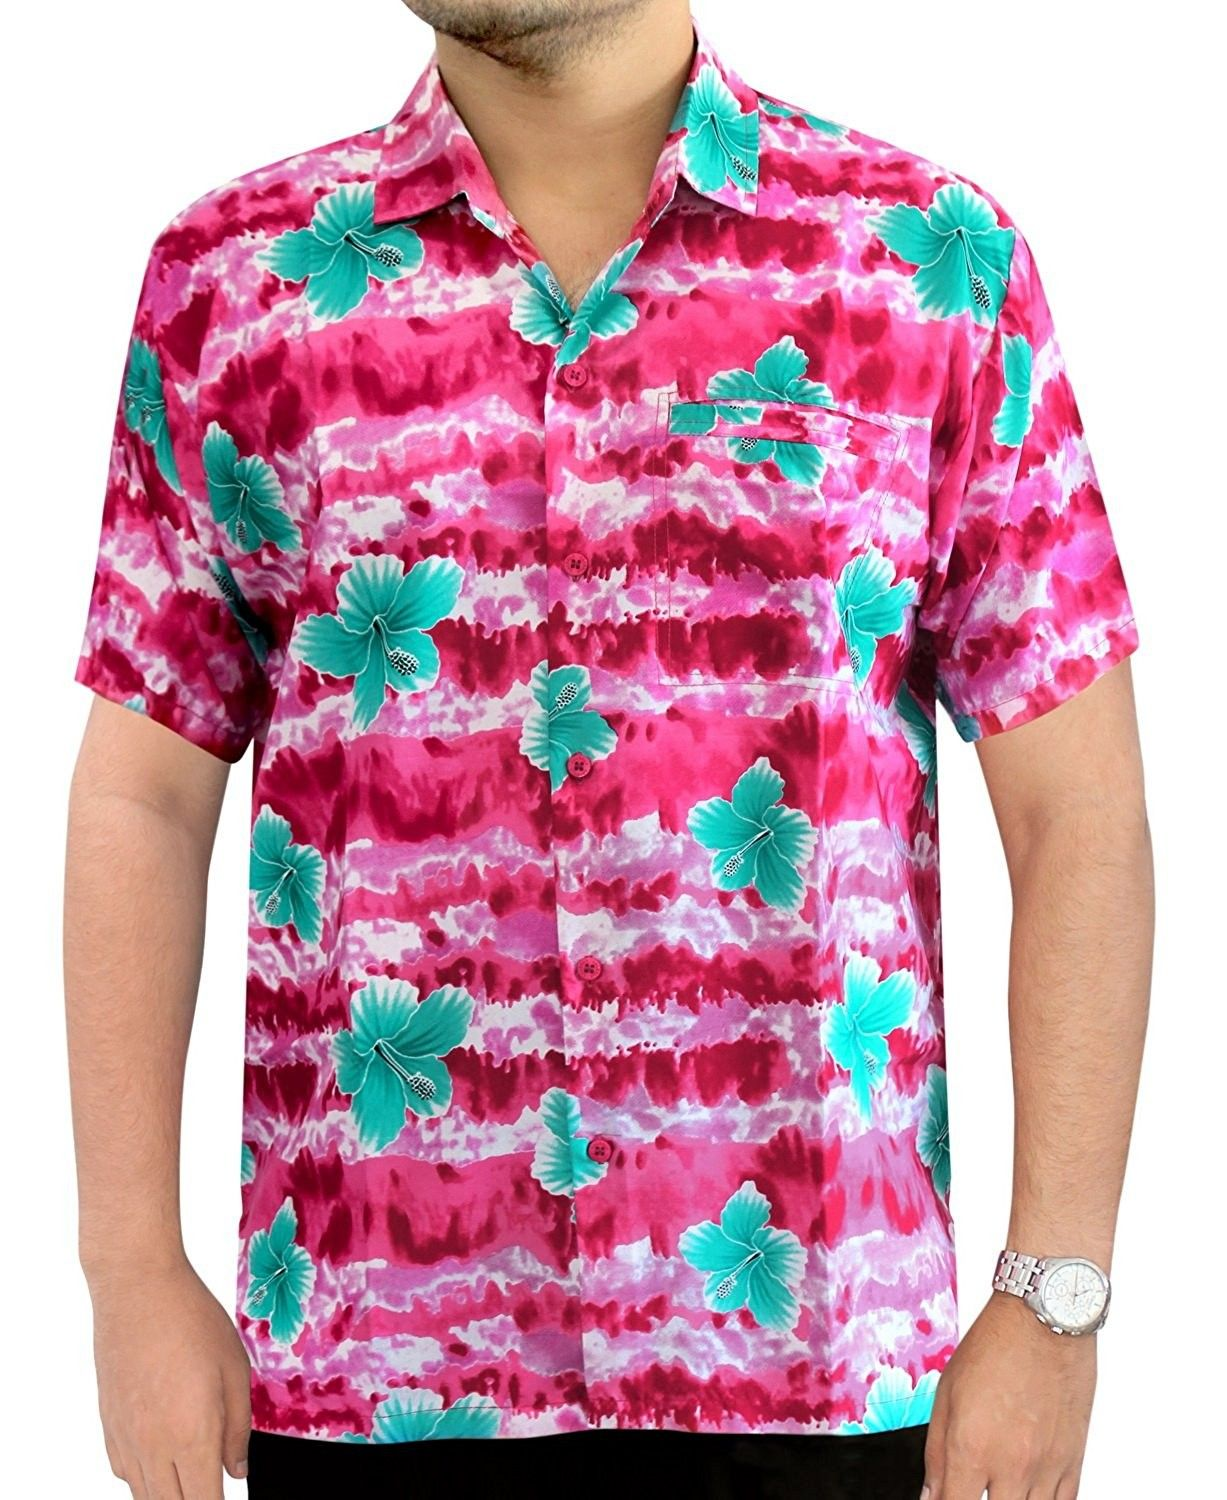 5d13bdd1 Men's Aloha Hawaiian Shirt Short Sleeve Button Down Casual Beach Party Blue  - Pink Blue Hibiscus Flower - CP12M9S3IUV,Men's Clothing, Shirts, ...